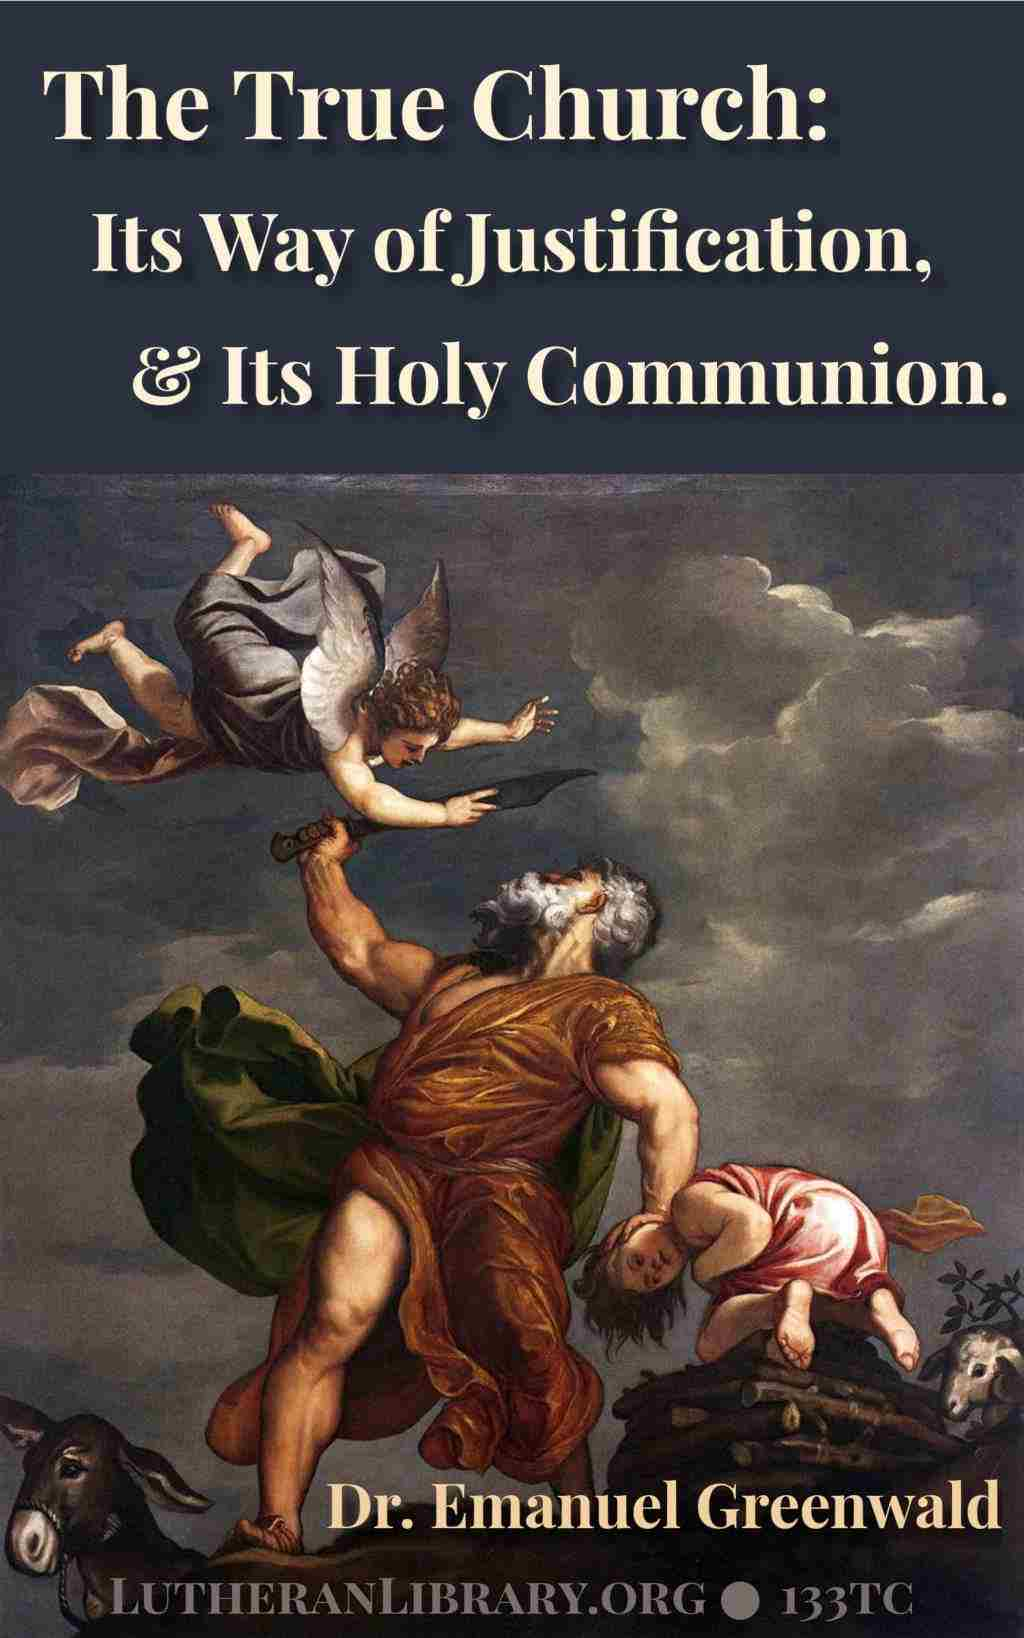 The True Church: Its Way of Justification and Its Holy Communion by Emanuel Greenwald